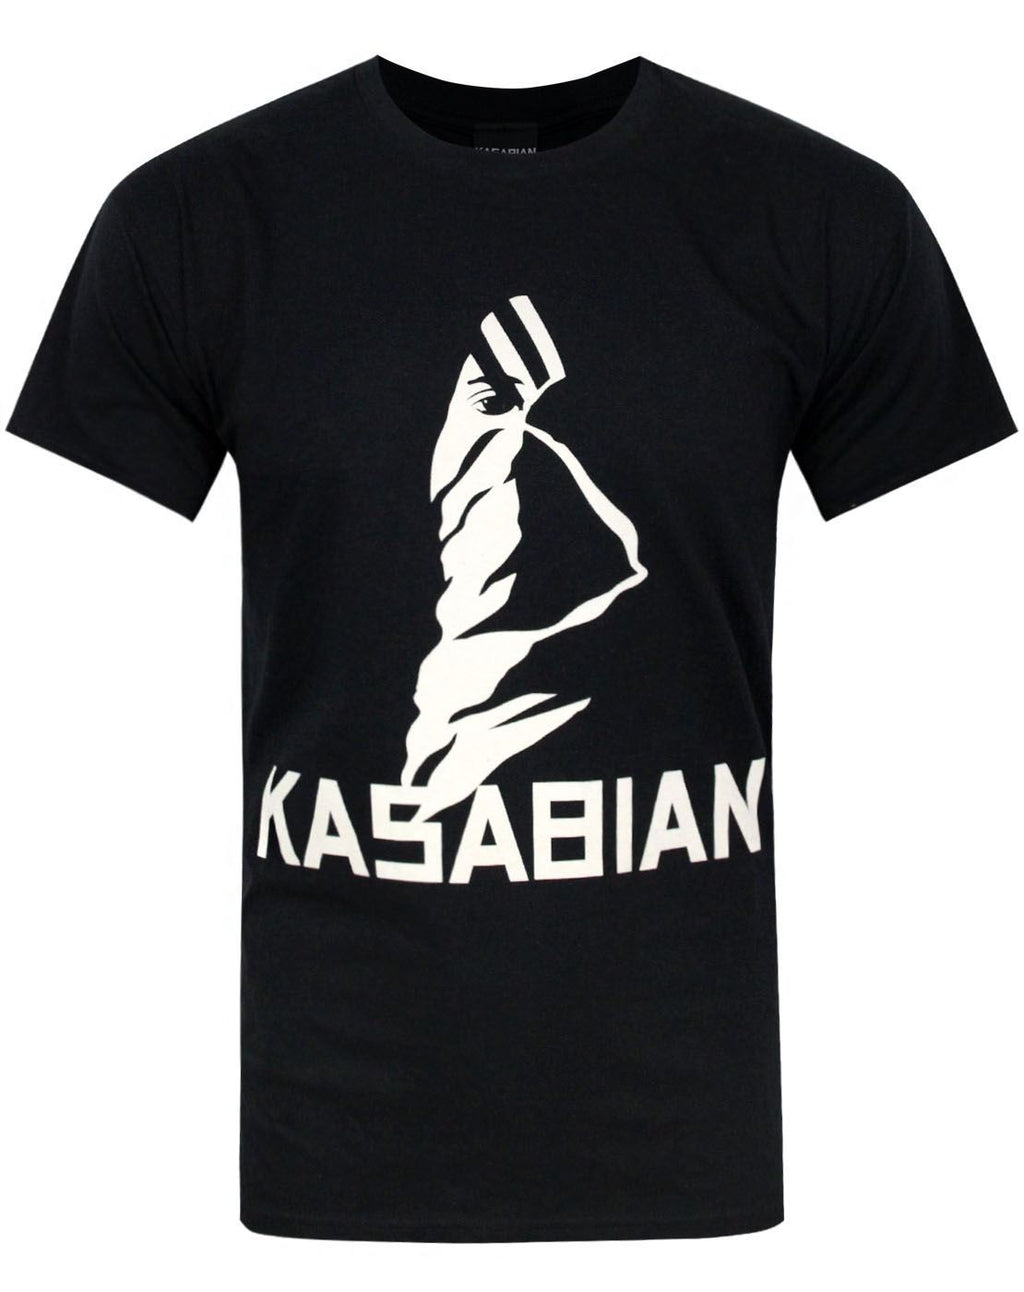 Kasabian Ultraface Men's T-Shirt